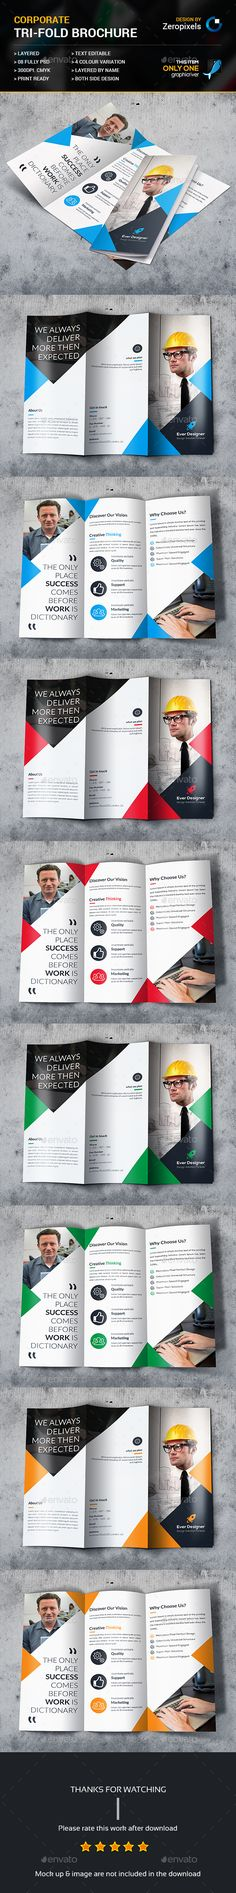 Trifold Brochure Template PSD. Download here: http://graphicriver.net/item/trifold/15941498?ref=ksioks